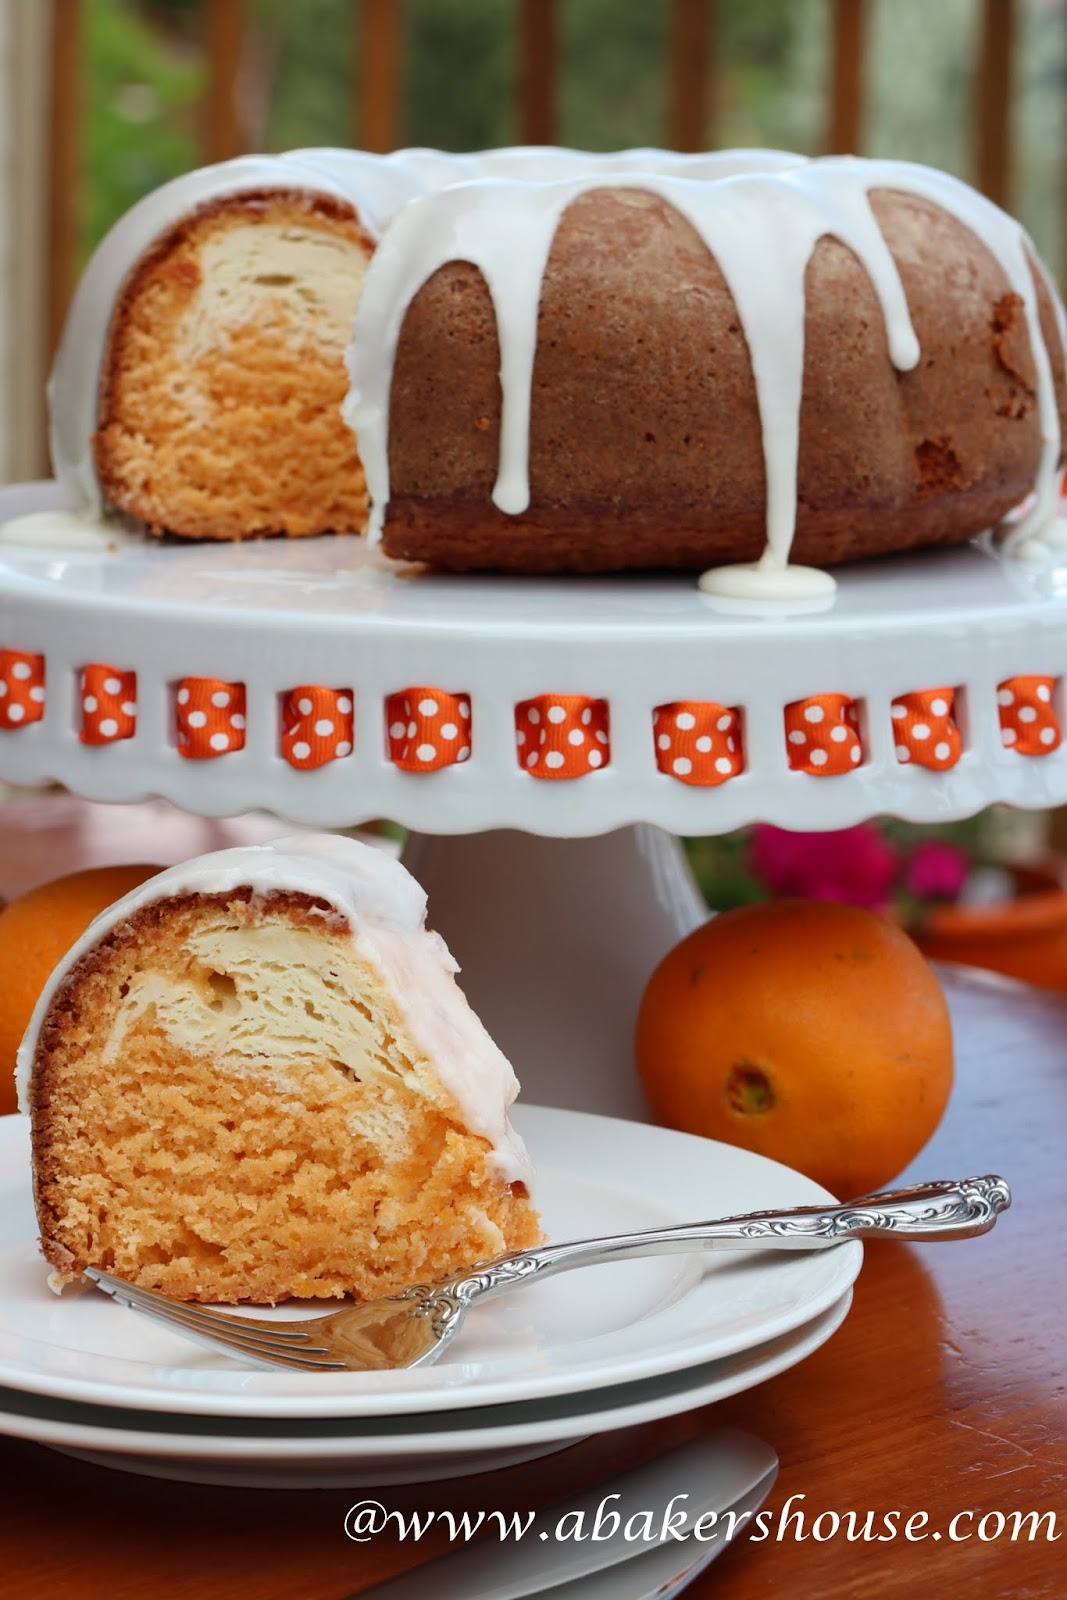 Slice of marbled orange and white bundt cake with white icing